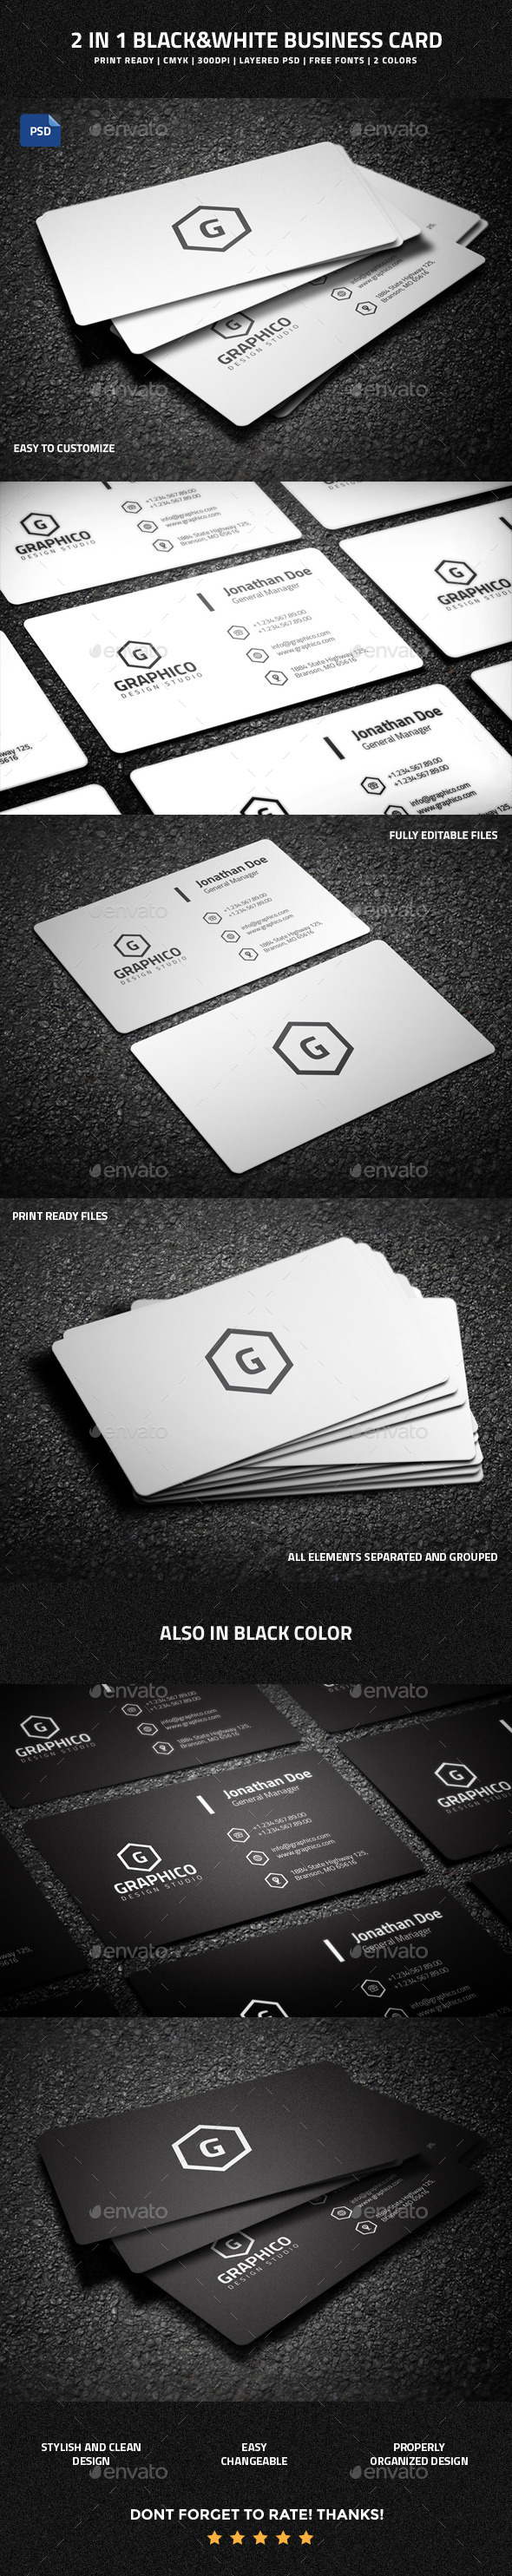 GraphicRiver 2 in 1 Black & White Business Card 53 10701141